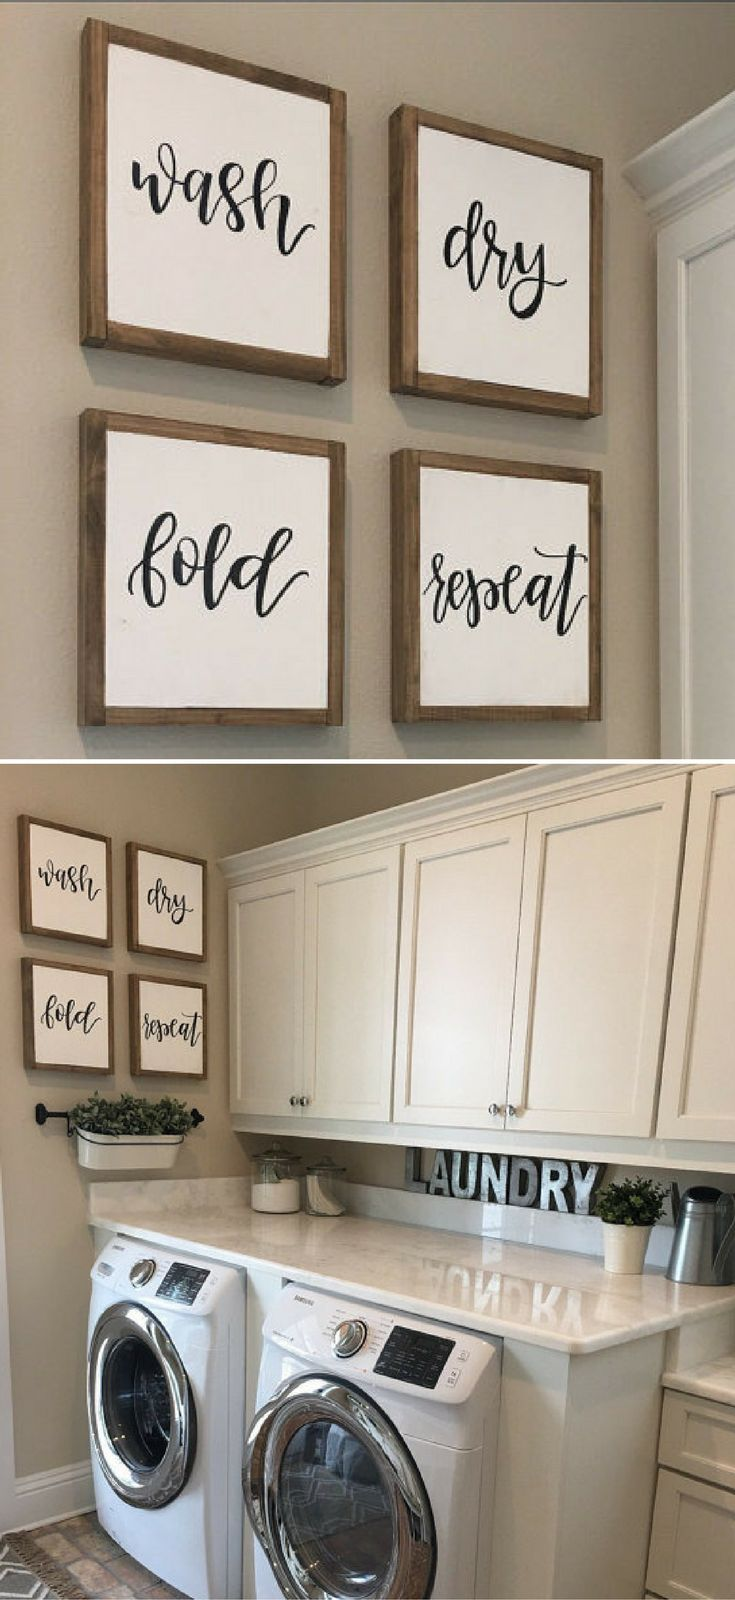 Laundry Room Sign | Laundry Sign | Wash Dry Fold Repeat Sign | Reclaimed Wood Sign | Mudroom Signs | Laundry Room Wall Decor | Fixer Upper | Farmhouse Sign | Farmhouse Decor | Rustic Decor #ad